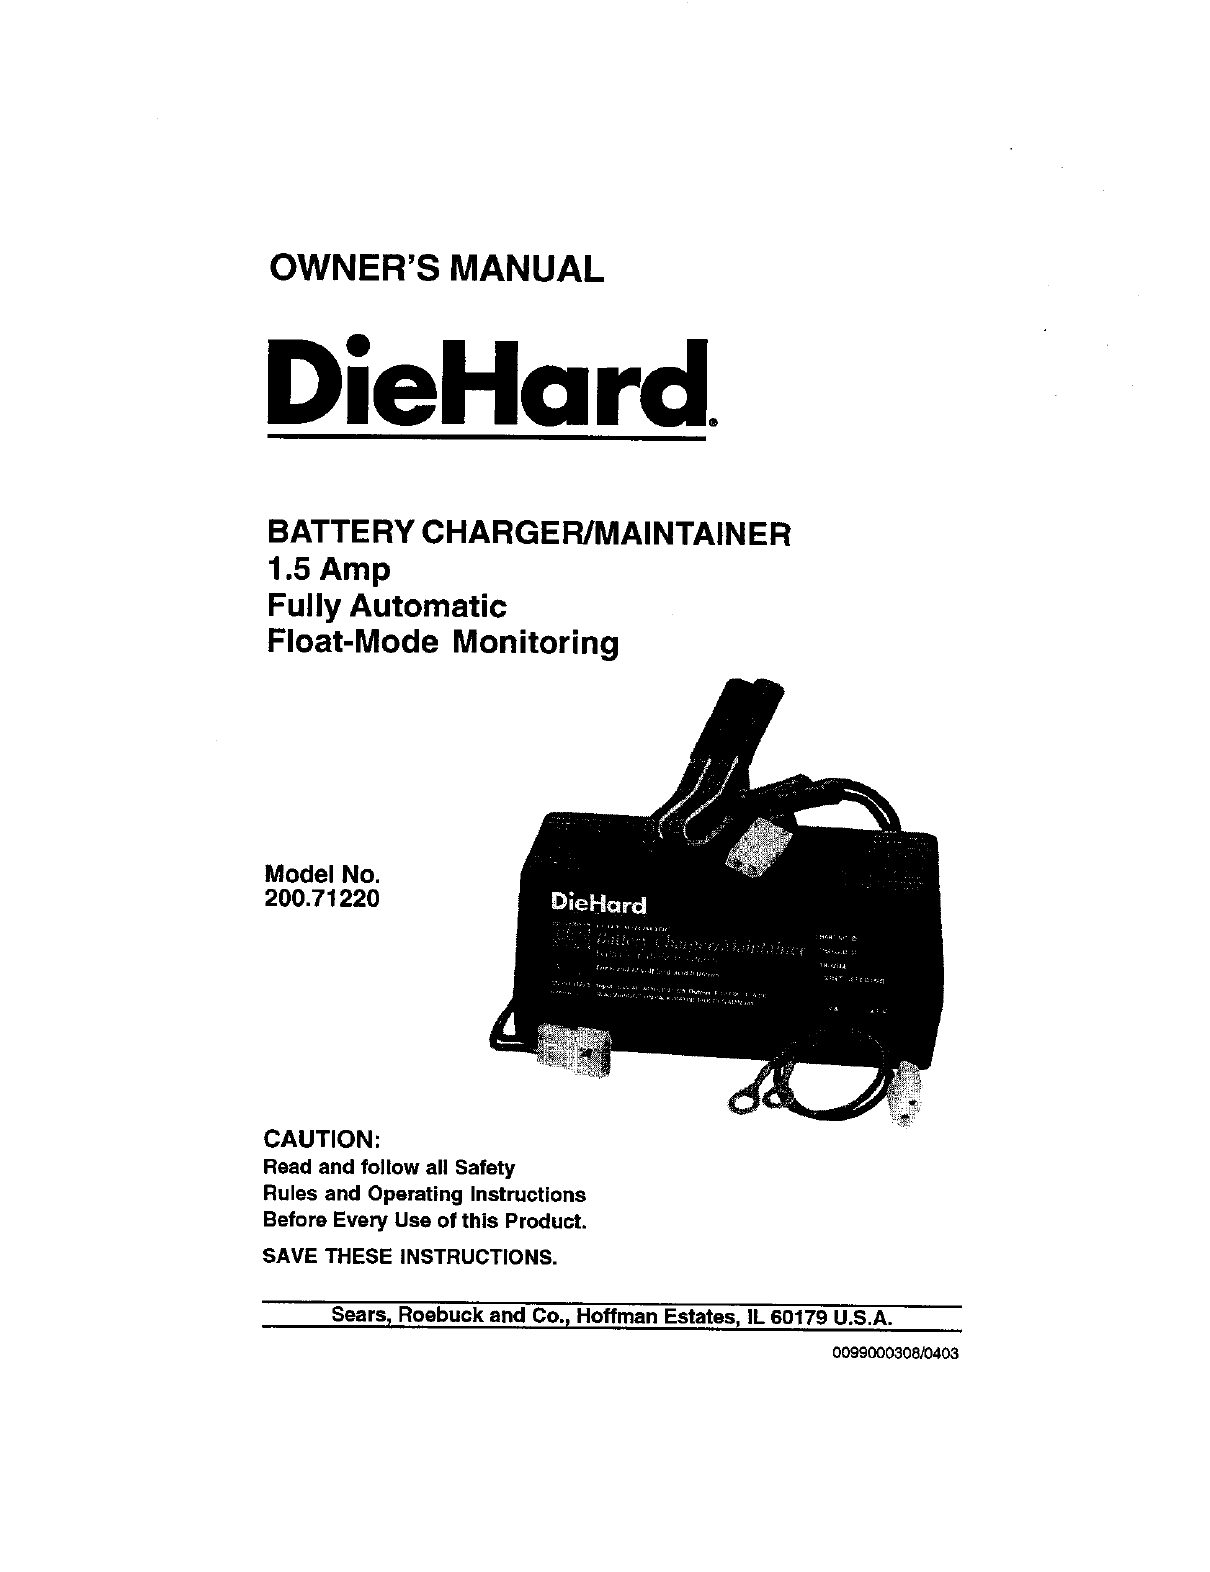 sears battery charger 200 7122 user guide manualsonline com rh powertool manualsonline com owners manual sears lawn mower user manual search